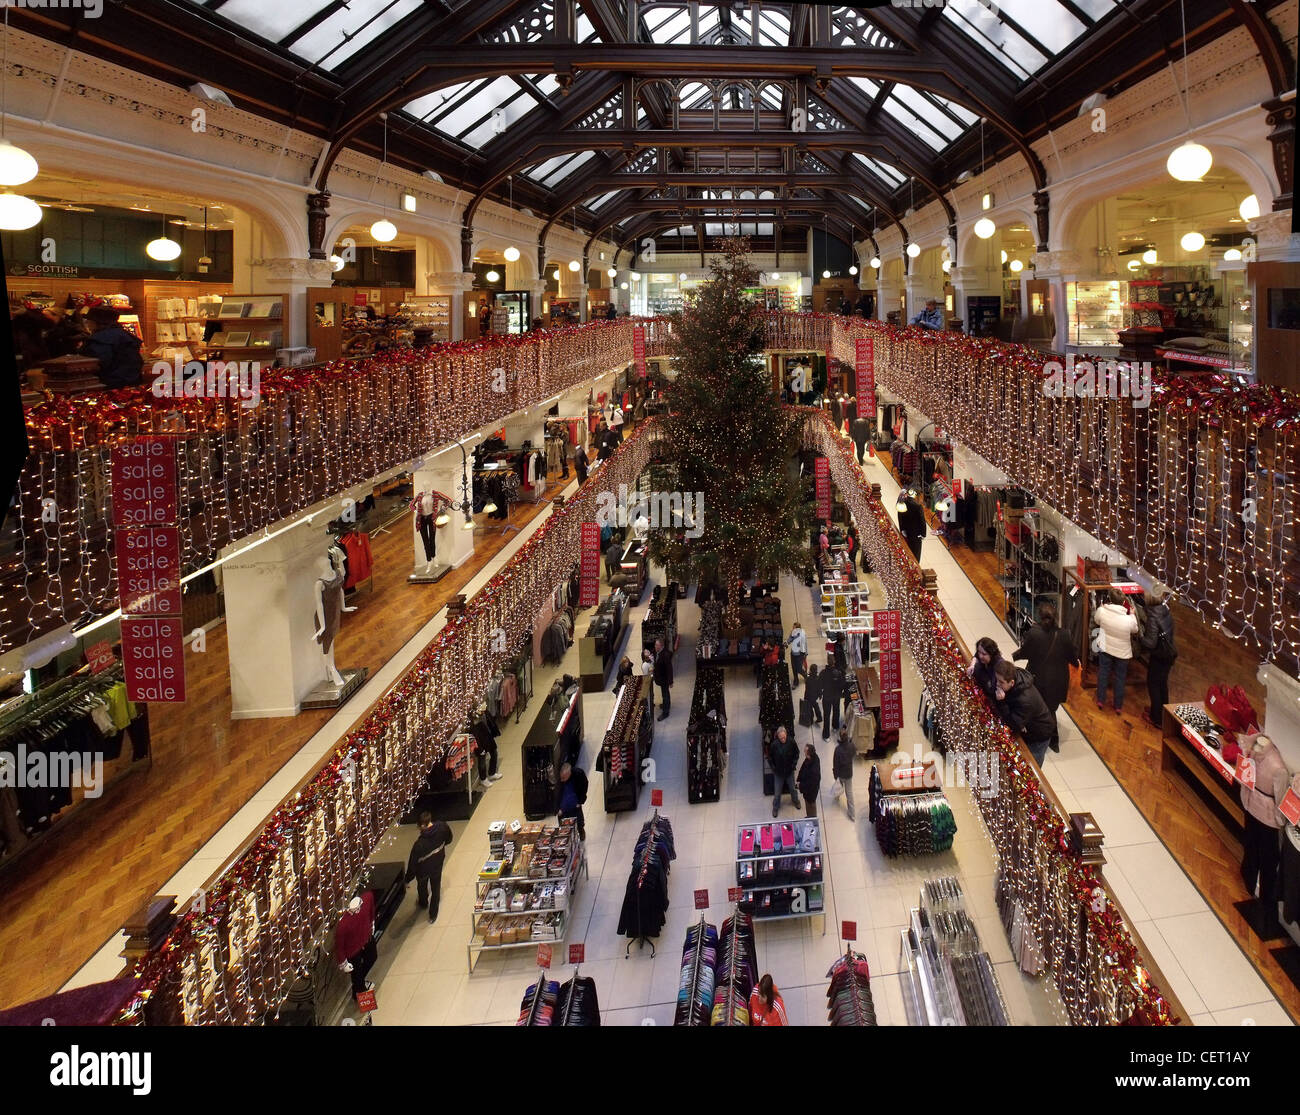 The,Jenners,Dept,store,Xmas,Tree,Edinburgh,Scotland,house,of,Frasier,HOF,Princes,St,Street,EDB,interior,inside,Department,gotonysmith,wide,angle,shop,shopping,retail,retailing,capital,city,concession,concessions,Harrods,of,the,north,scottish,stores,holding company JPSE Ltd,owned by the Douglas-Miller family,and,was,sold,Moorcroft,Capital,Management,in,August,2005,owned,Robbie,Douglas,Miller,former,Chief,Executive,of,Jenners,gotonysmith,Buy Pictures of,Buy Images Of